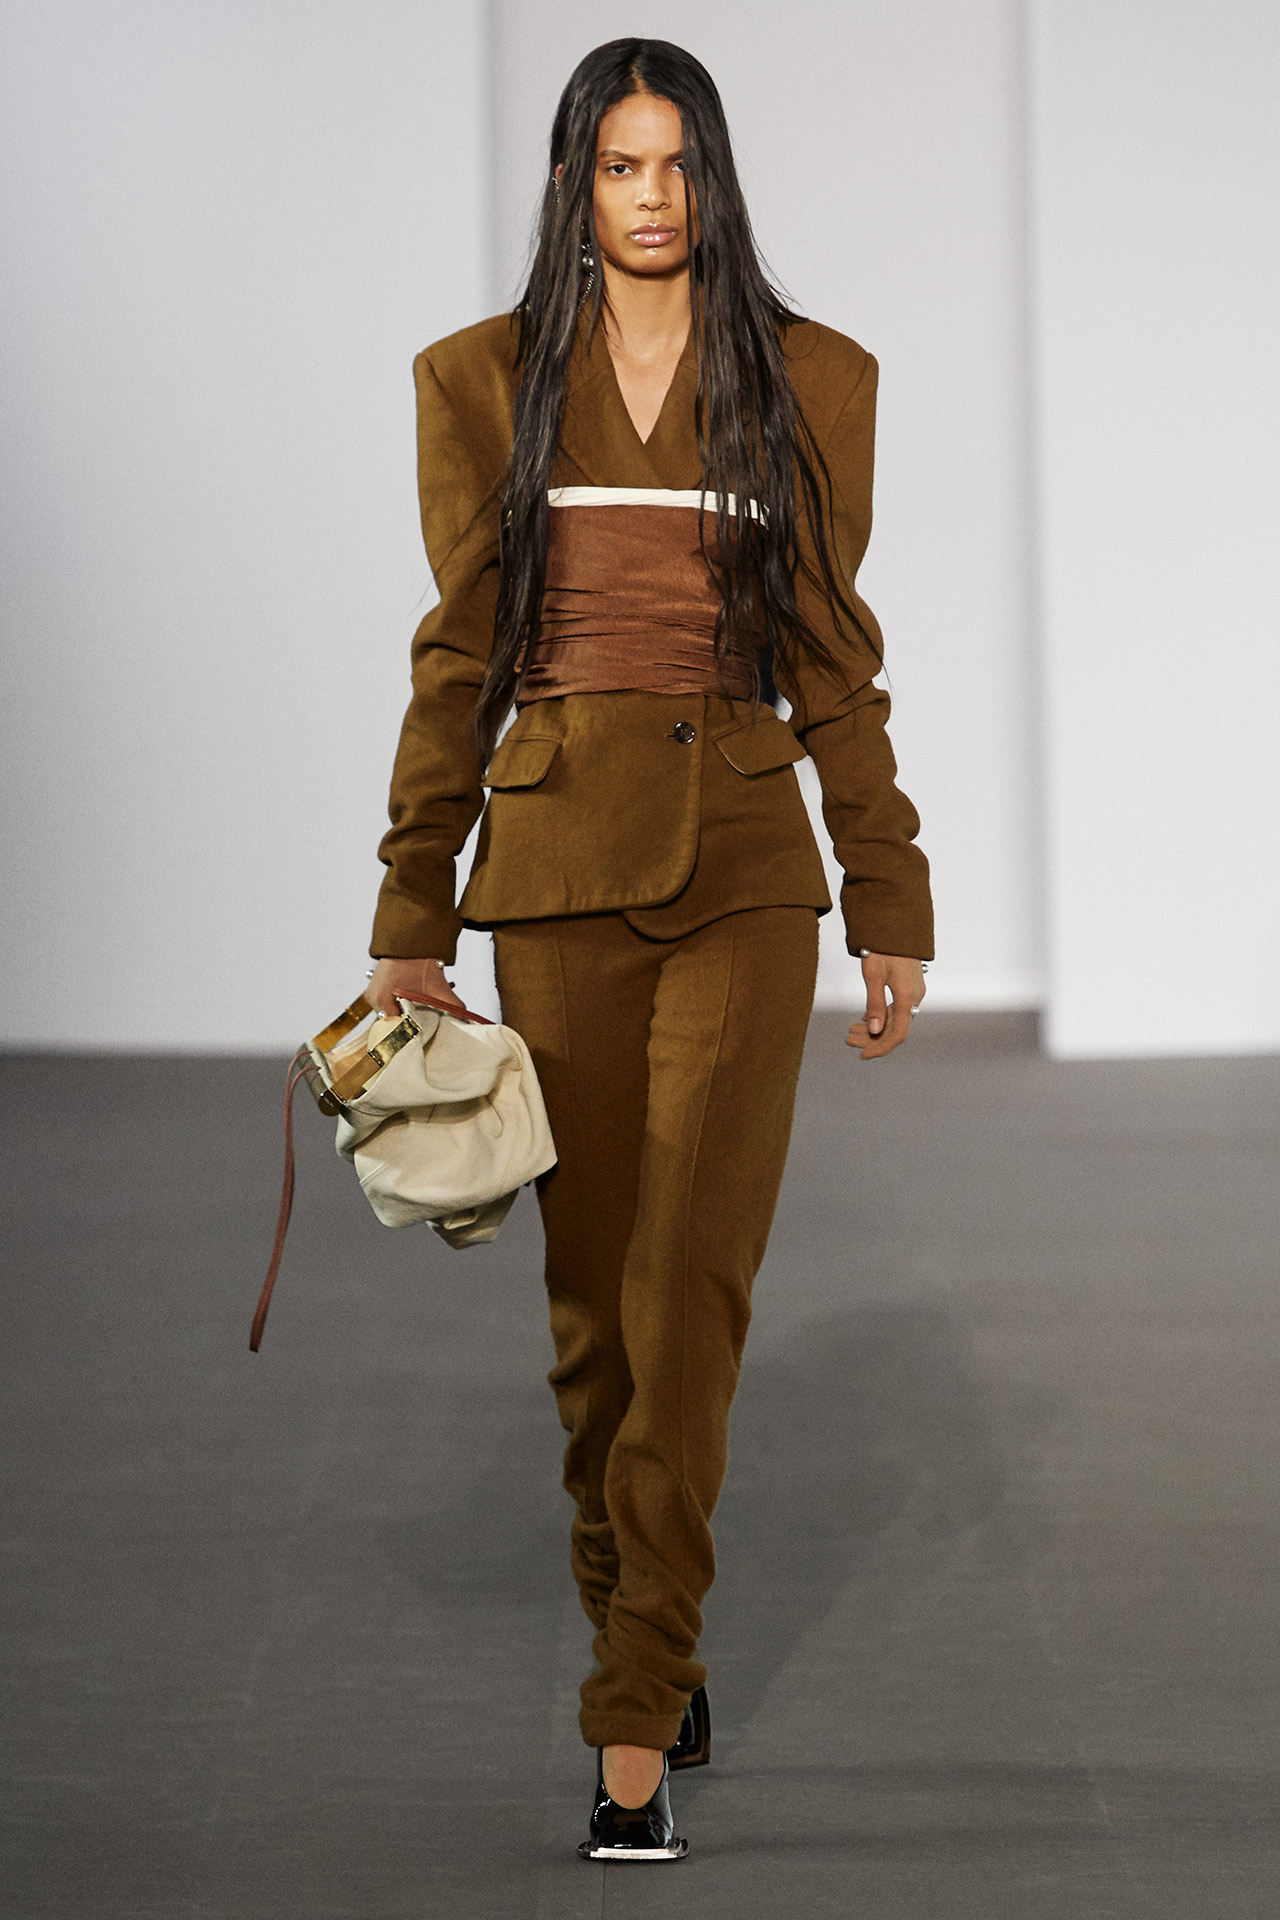 Look Fall/Winter 2020, image 26